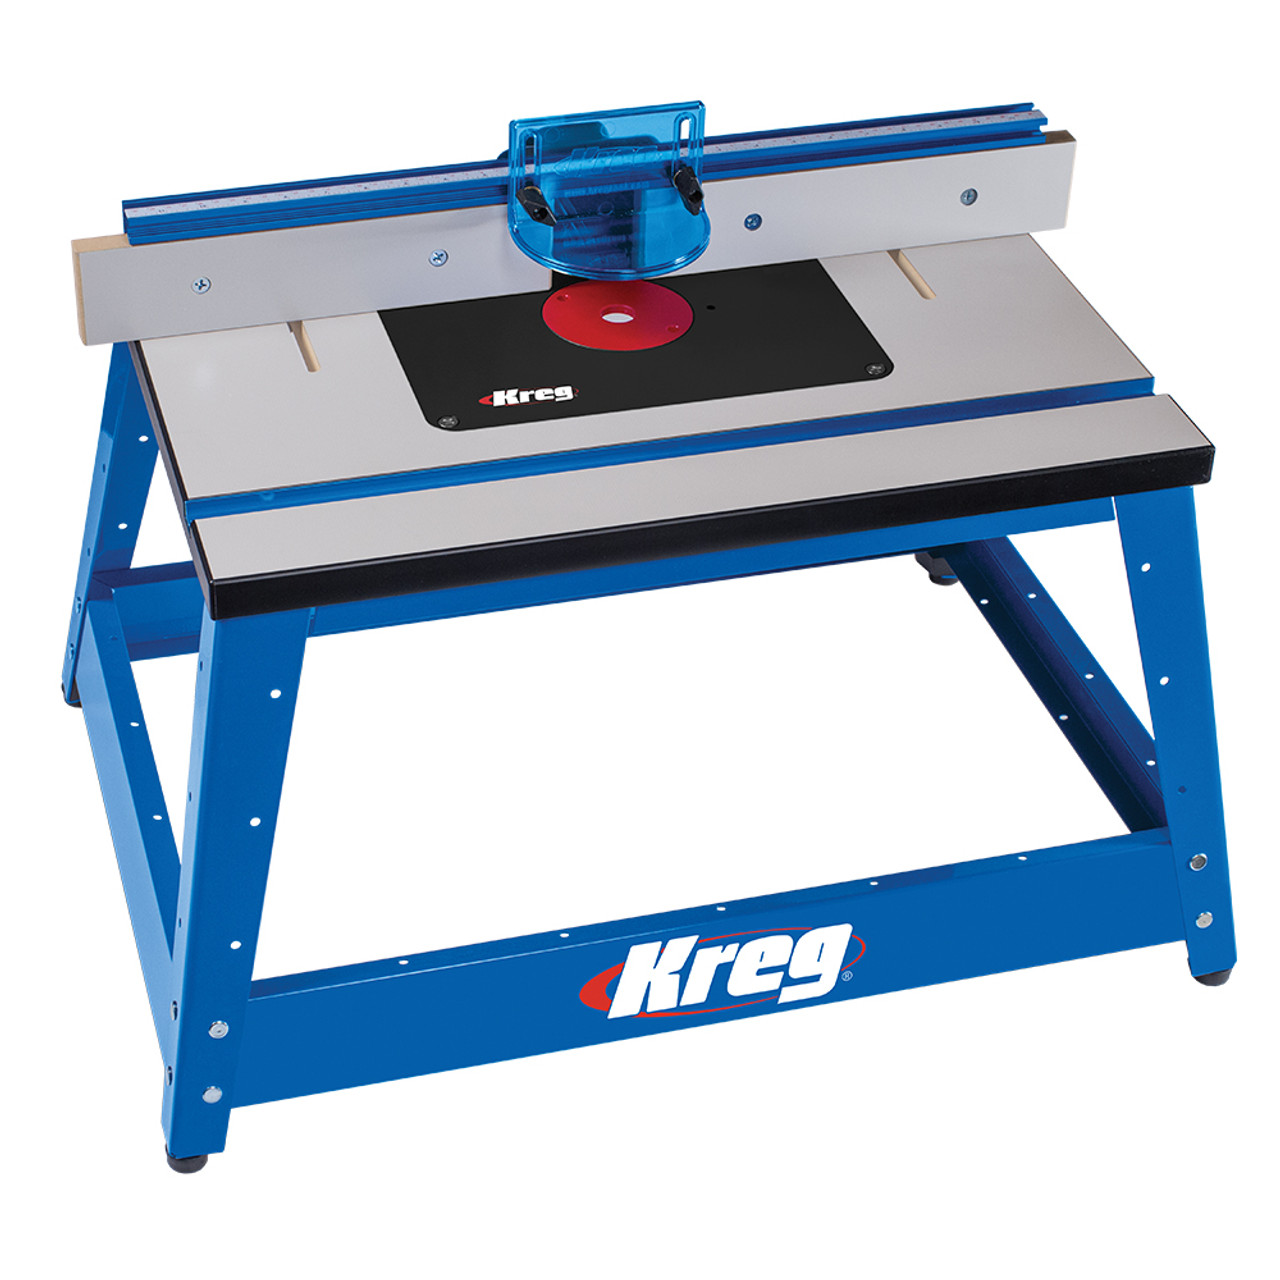 Precision benchtop router table prs2100 kreg precision benchtop router table prs2100 keyboard keysfo Choice Image